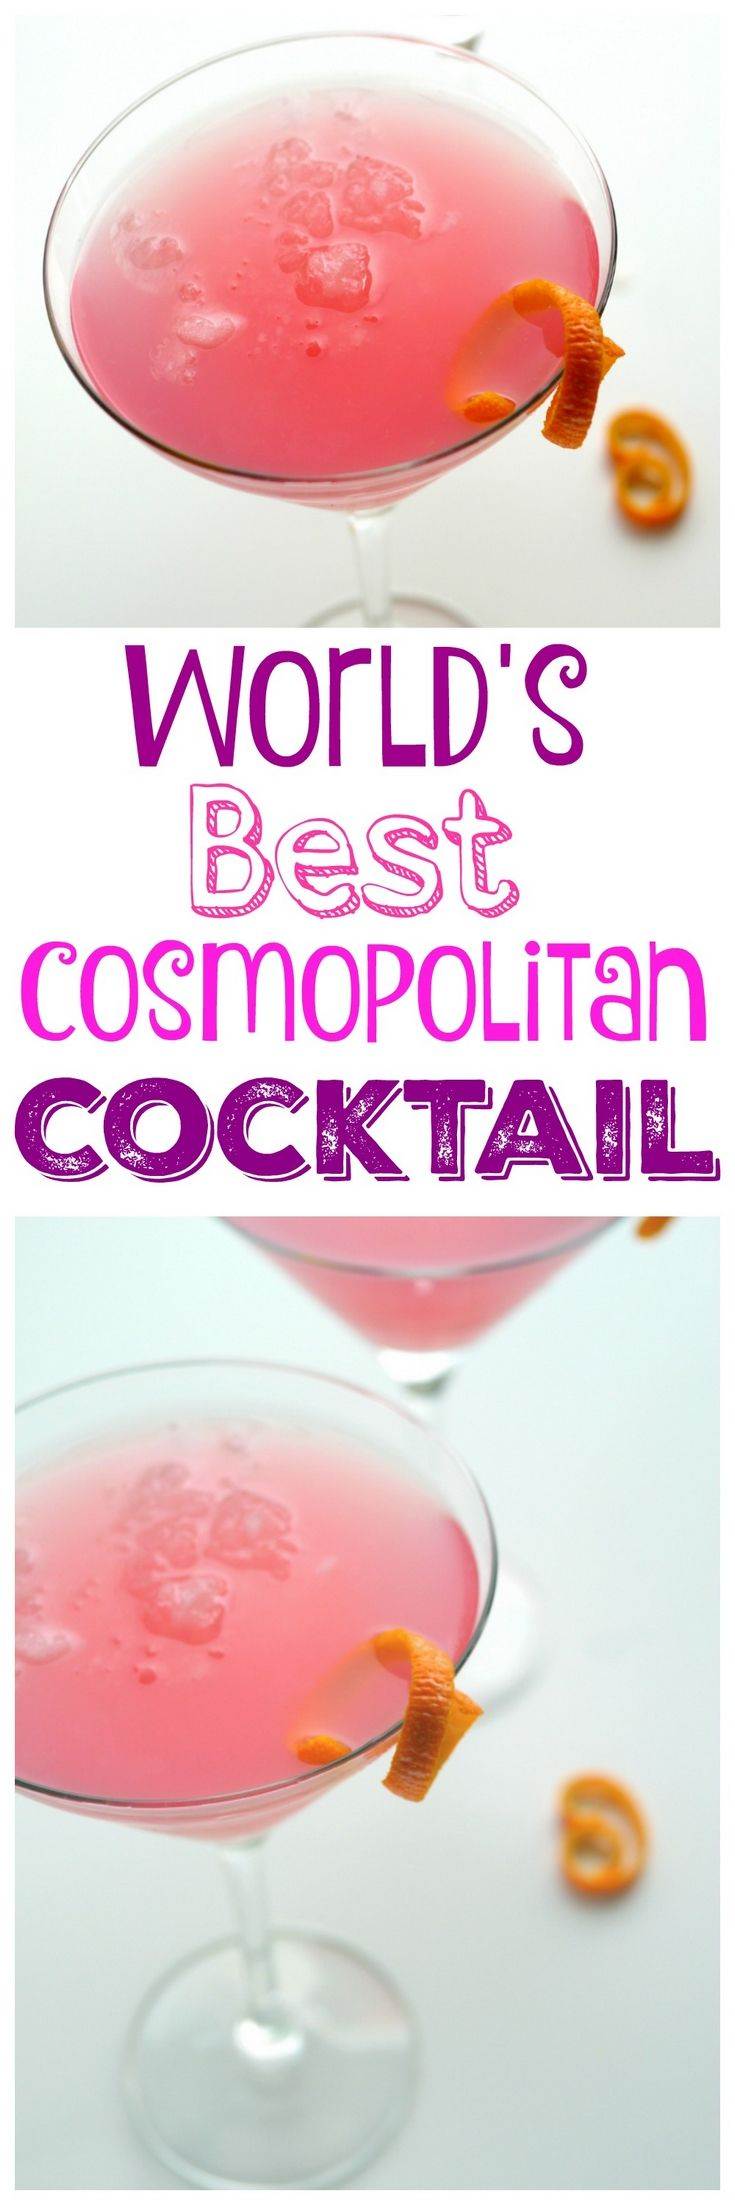 Why would you want to drink anything other than the World's Best Cosmopolitan Cocktail? The only thing girly about this drink is its color, from NoblePig.com.